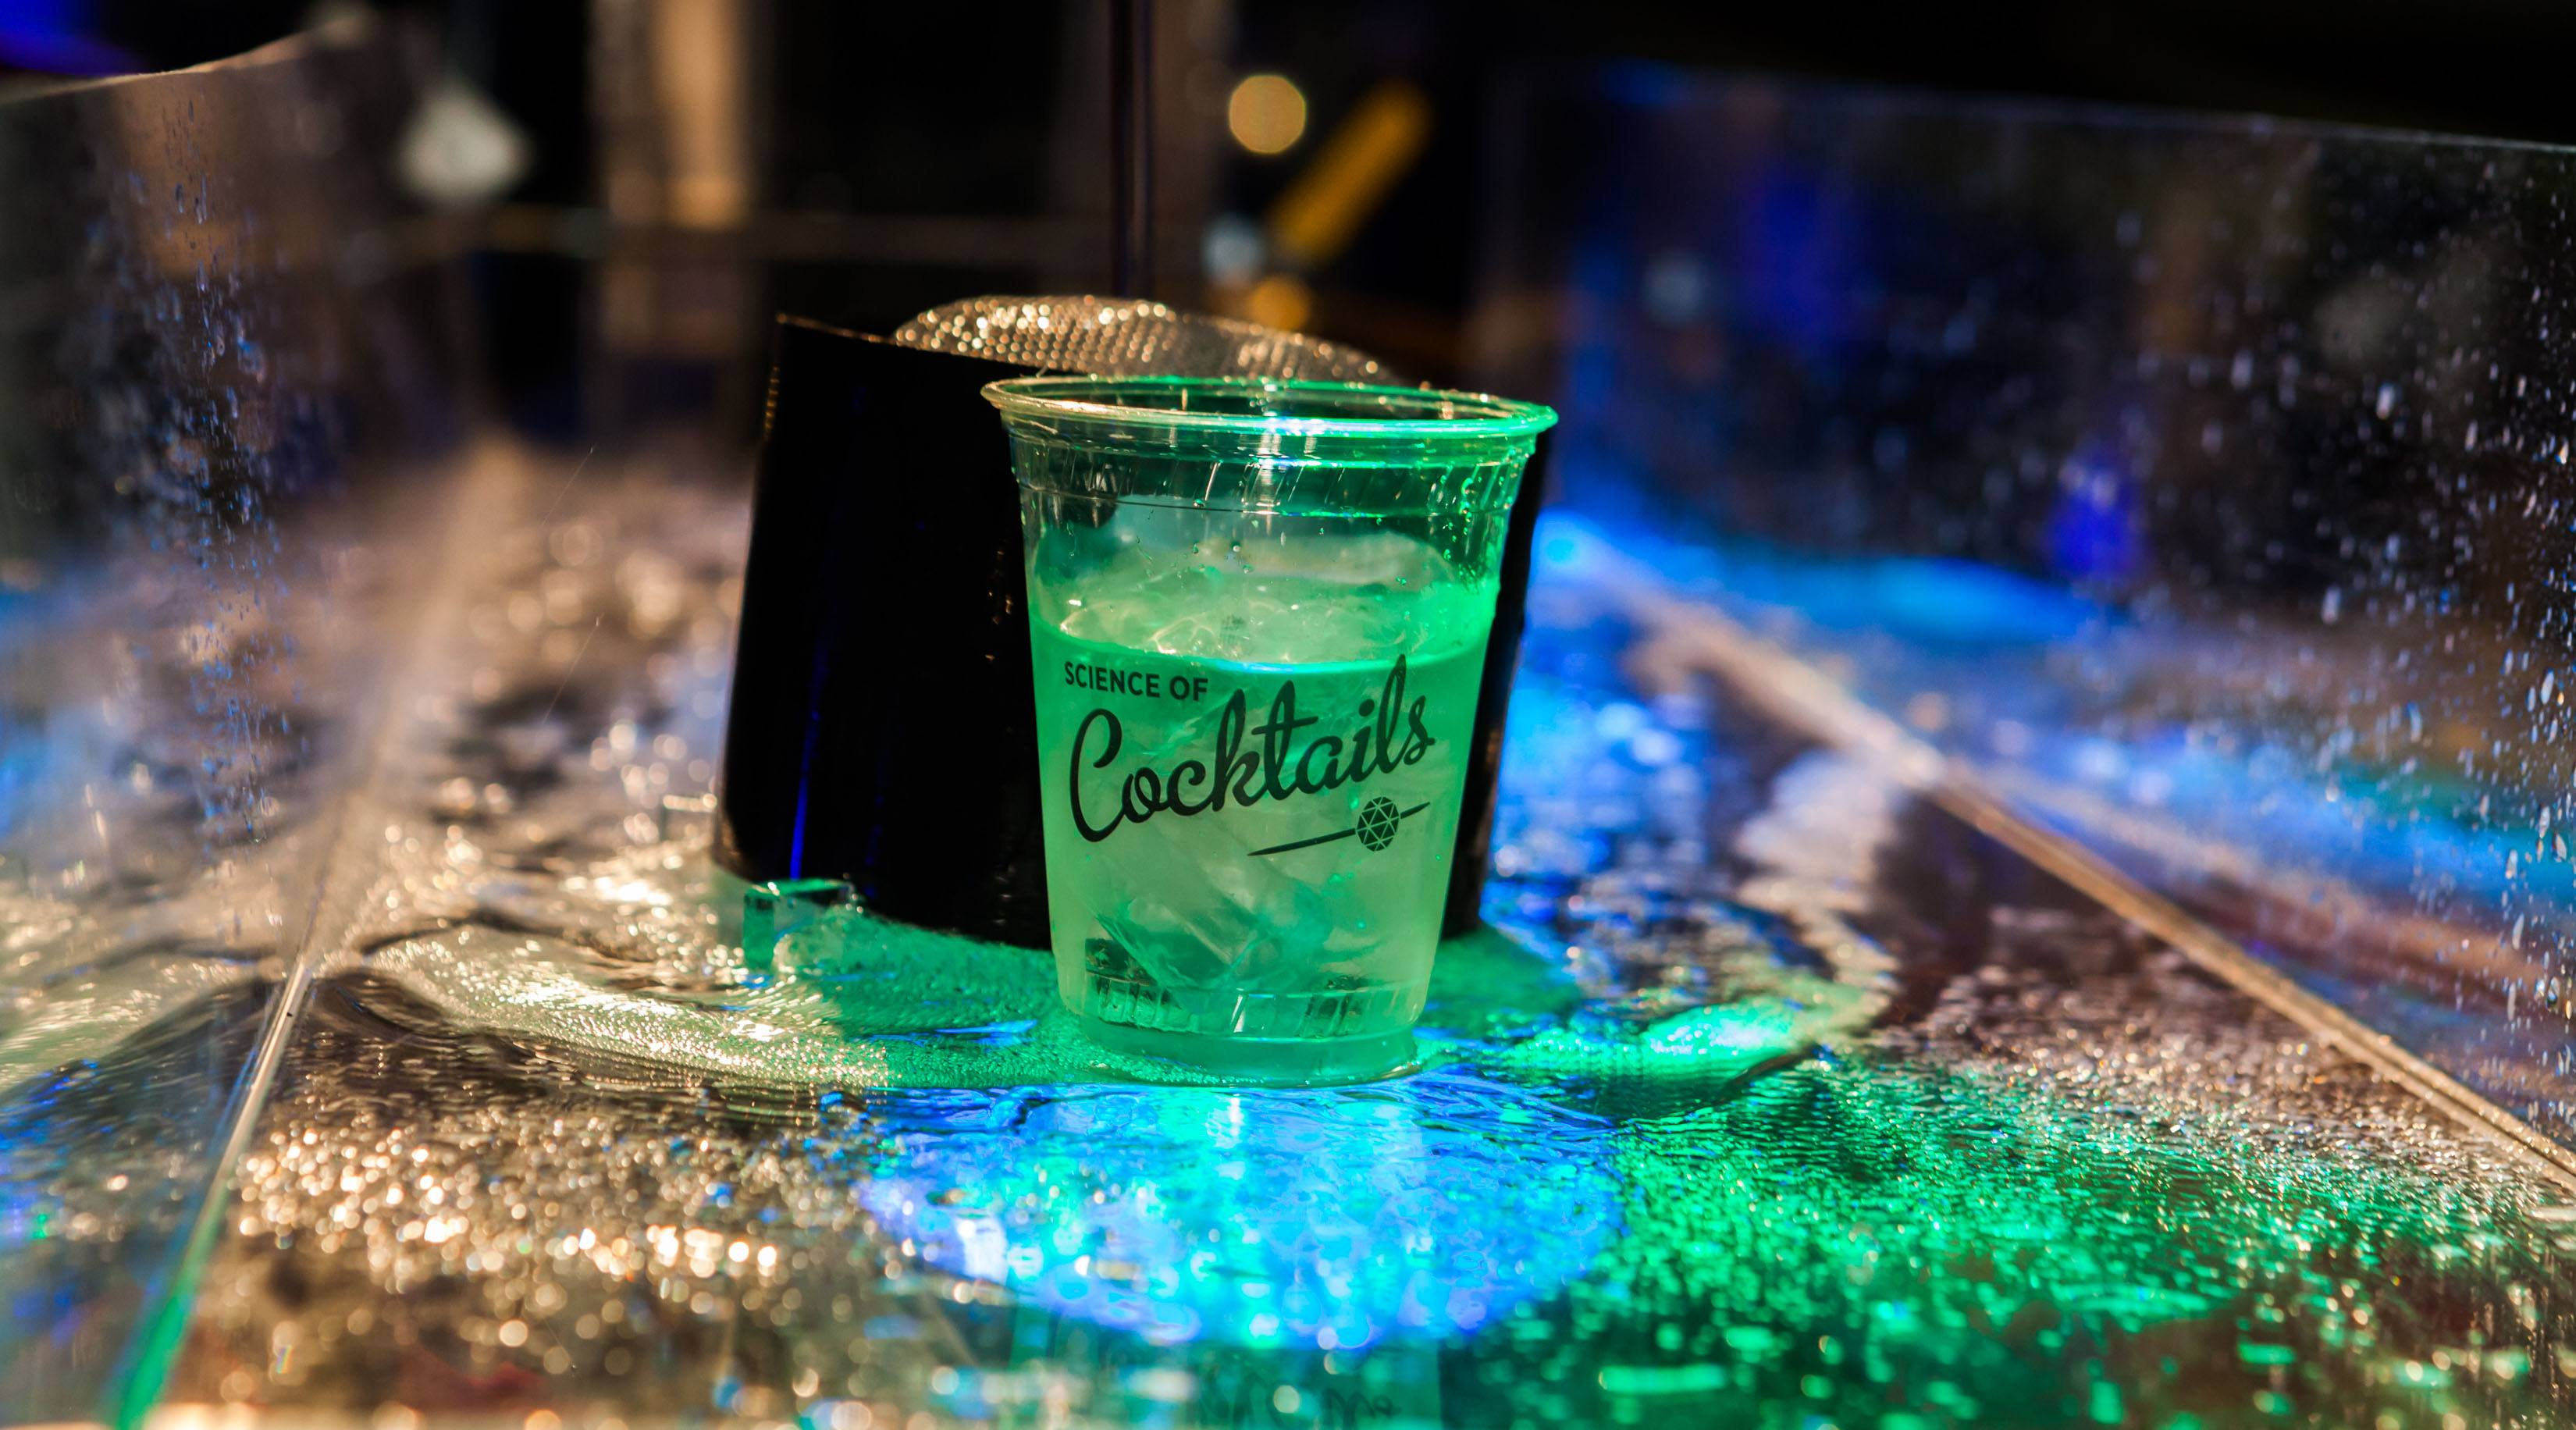 Science of cocktails cup at the hendricks gin station picture listen photography